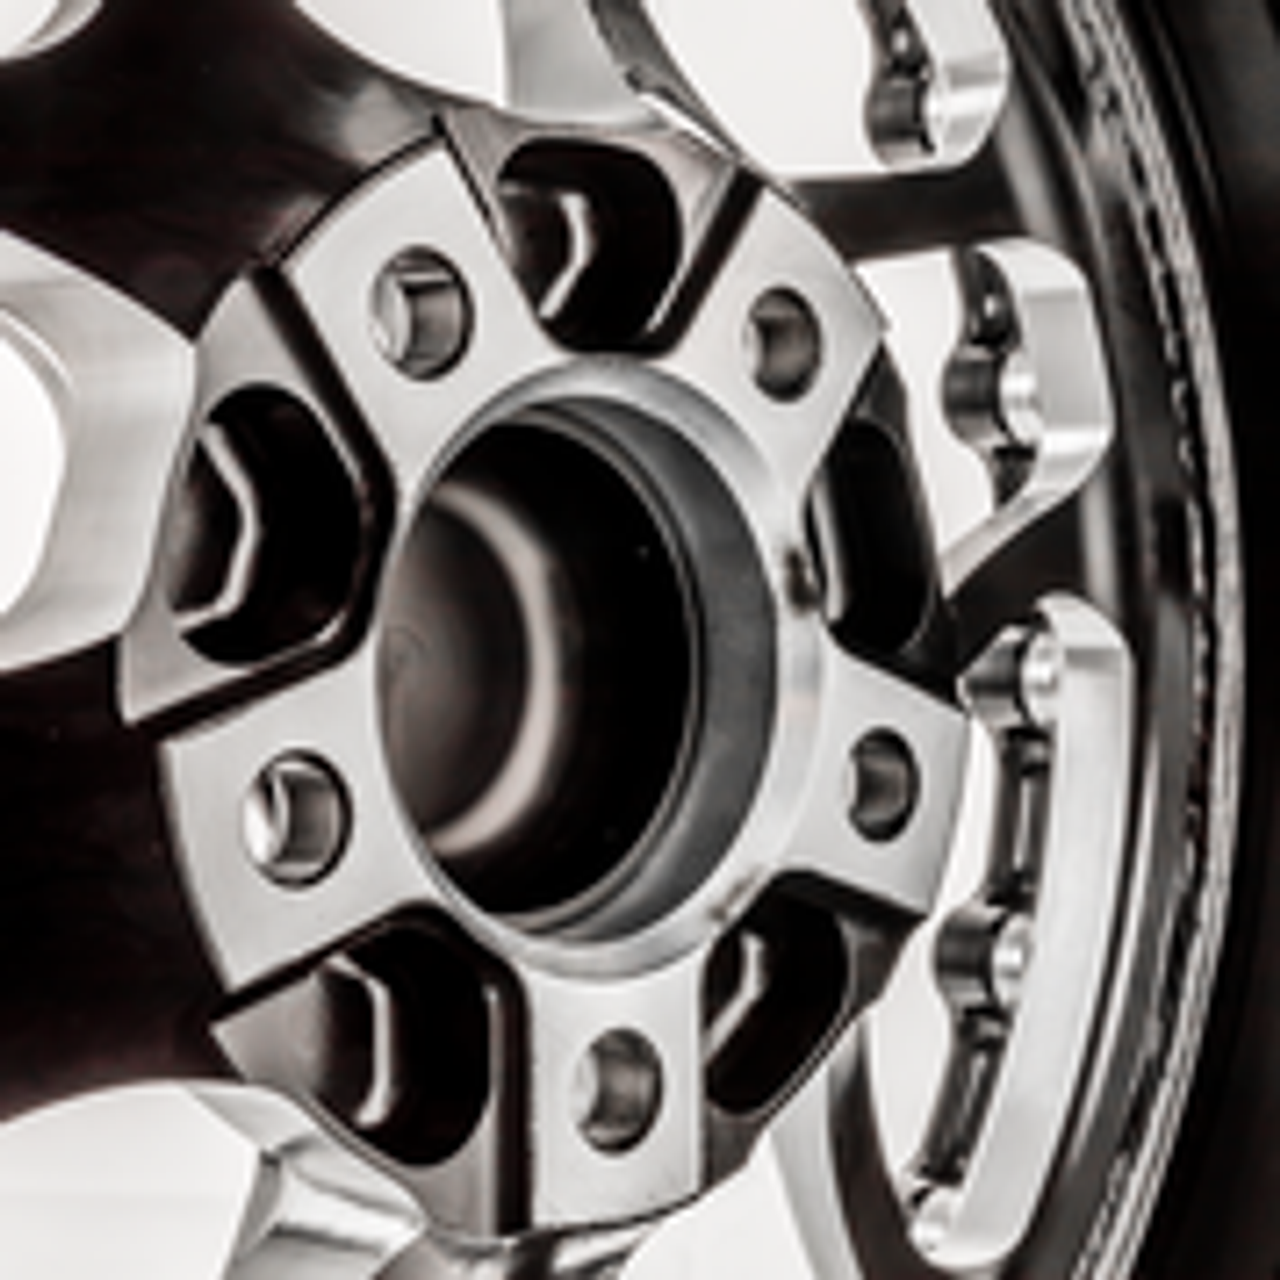 Win Lite  - 17x10 / 18x5 Drag Pack - Single Bead Lock - Front and Rear Set